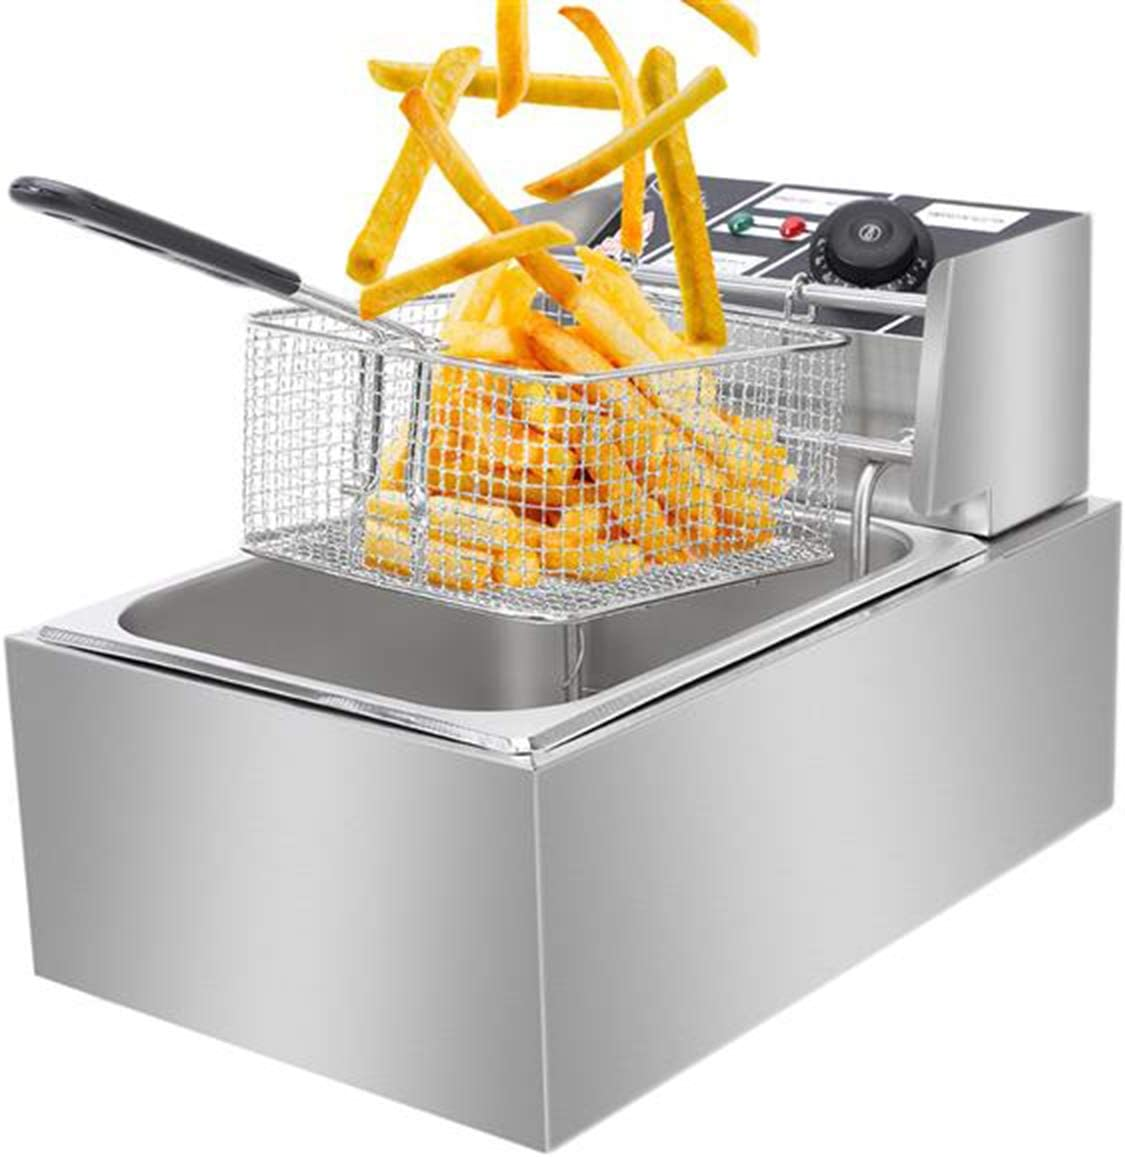 Commercial Deep Fryer, 6.3QT/6L 2500W MAX Stainless Steel Electric Deep Fryer with Basket, Countertop Fryer Deep Fryer for Chicken Chips Fries French Fries Restaurant Home Kitchen